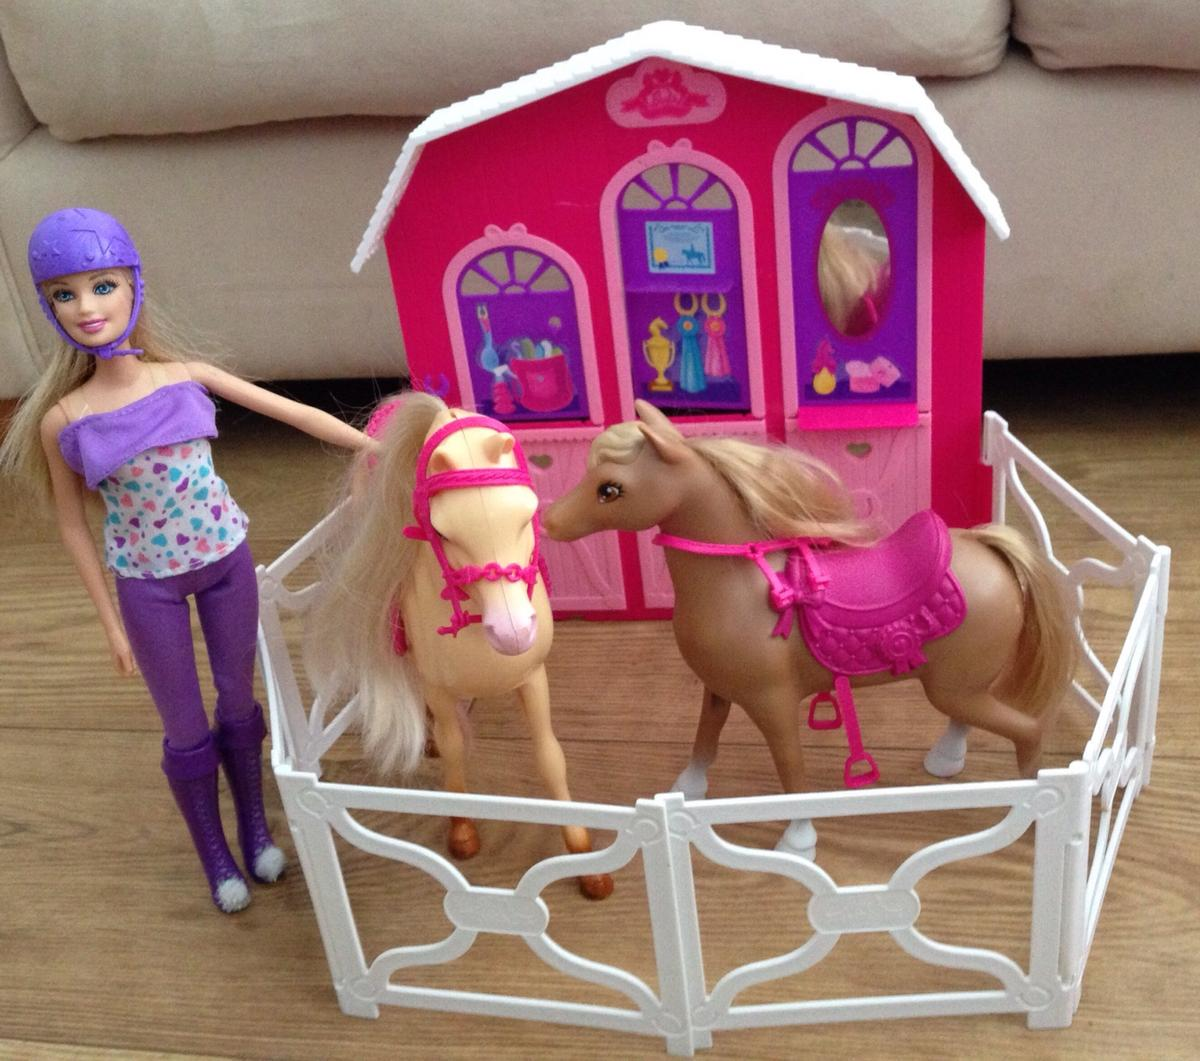 Barbie Bundle Horse Stable Horses Doll In L22 Sefton For 15 00 For Sale Shpock